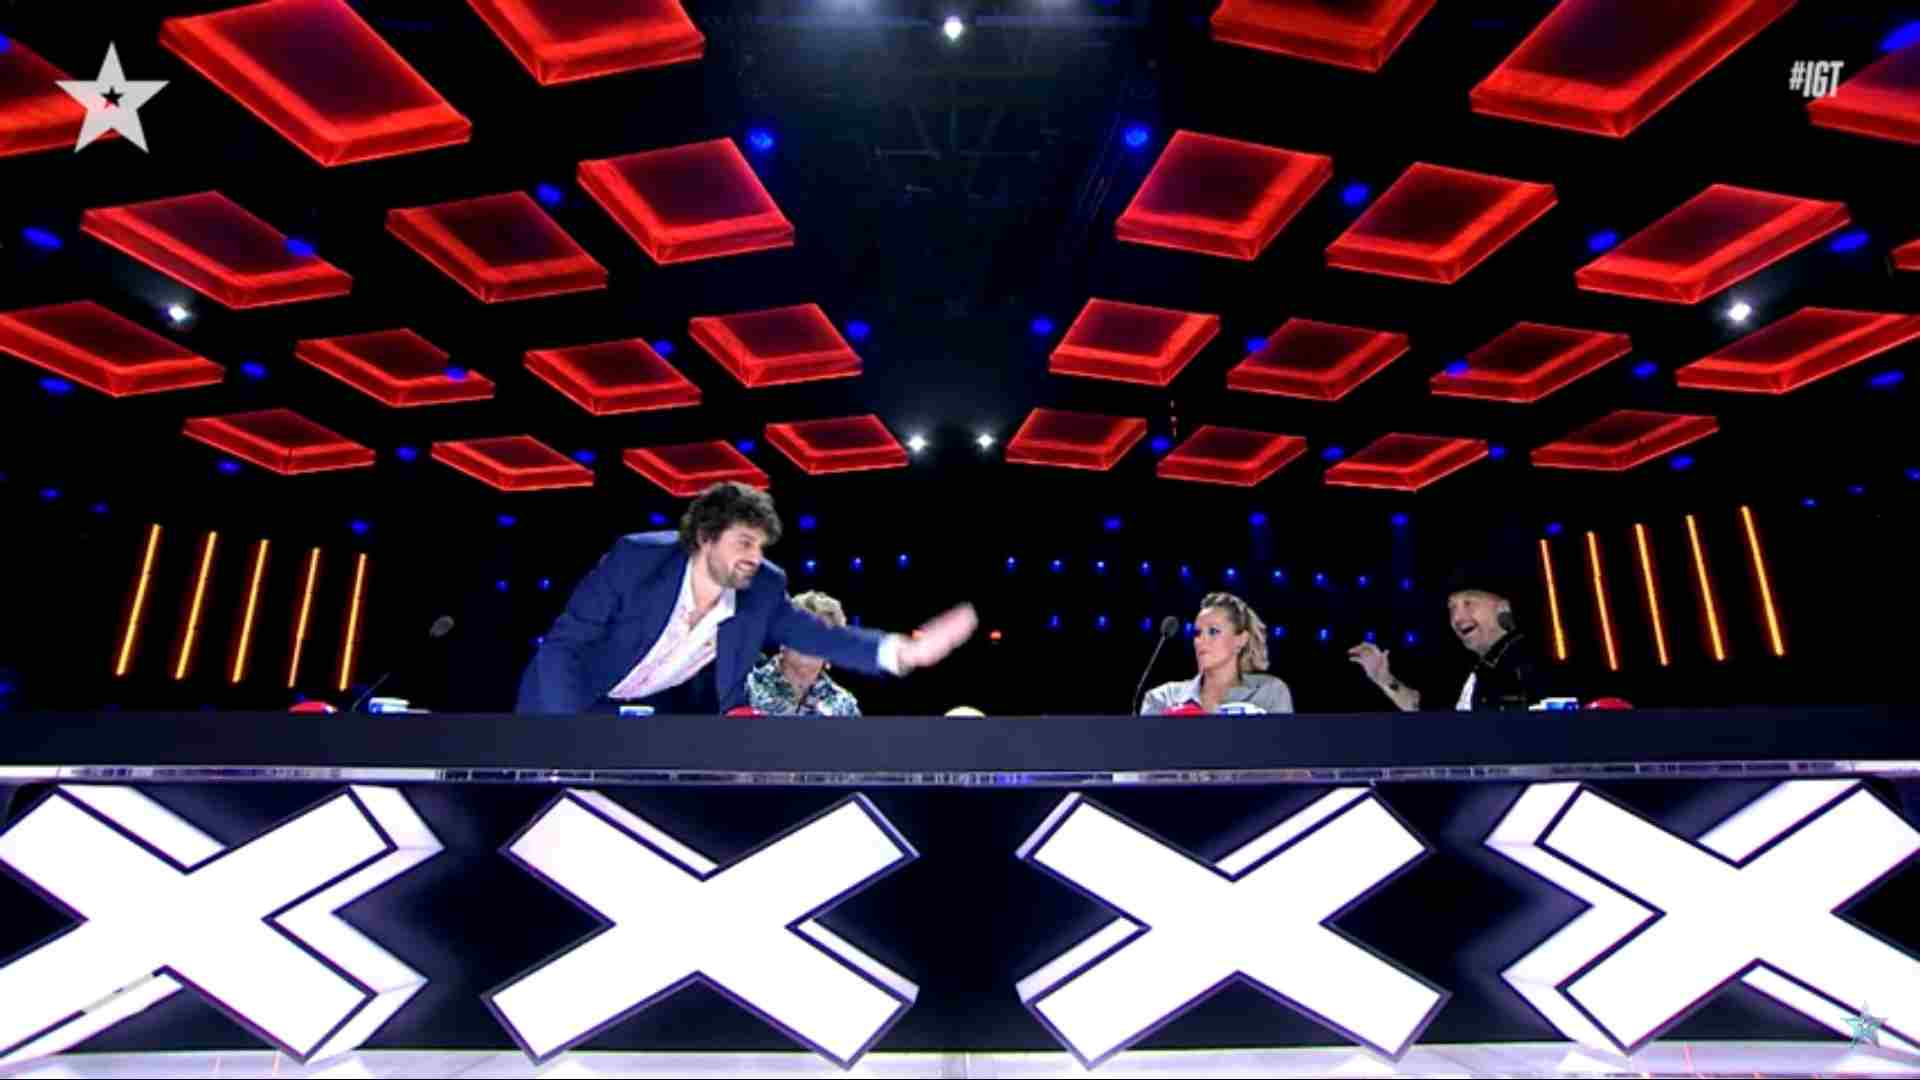 Italia's Got Talent 2021: Golden Buzzer di Frank Matano per Giustino (video)